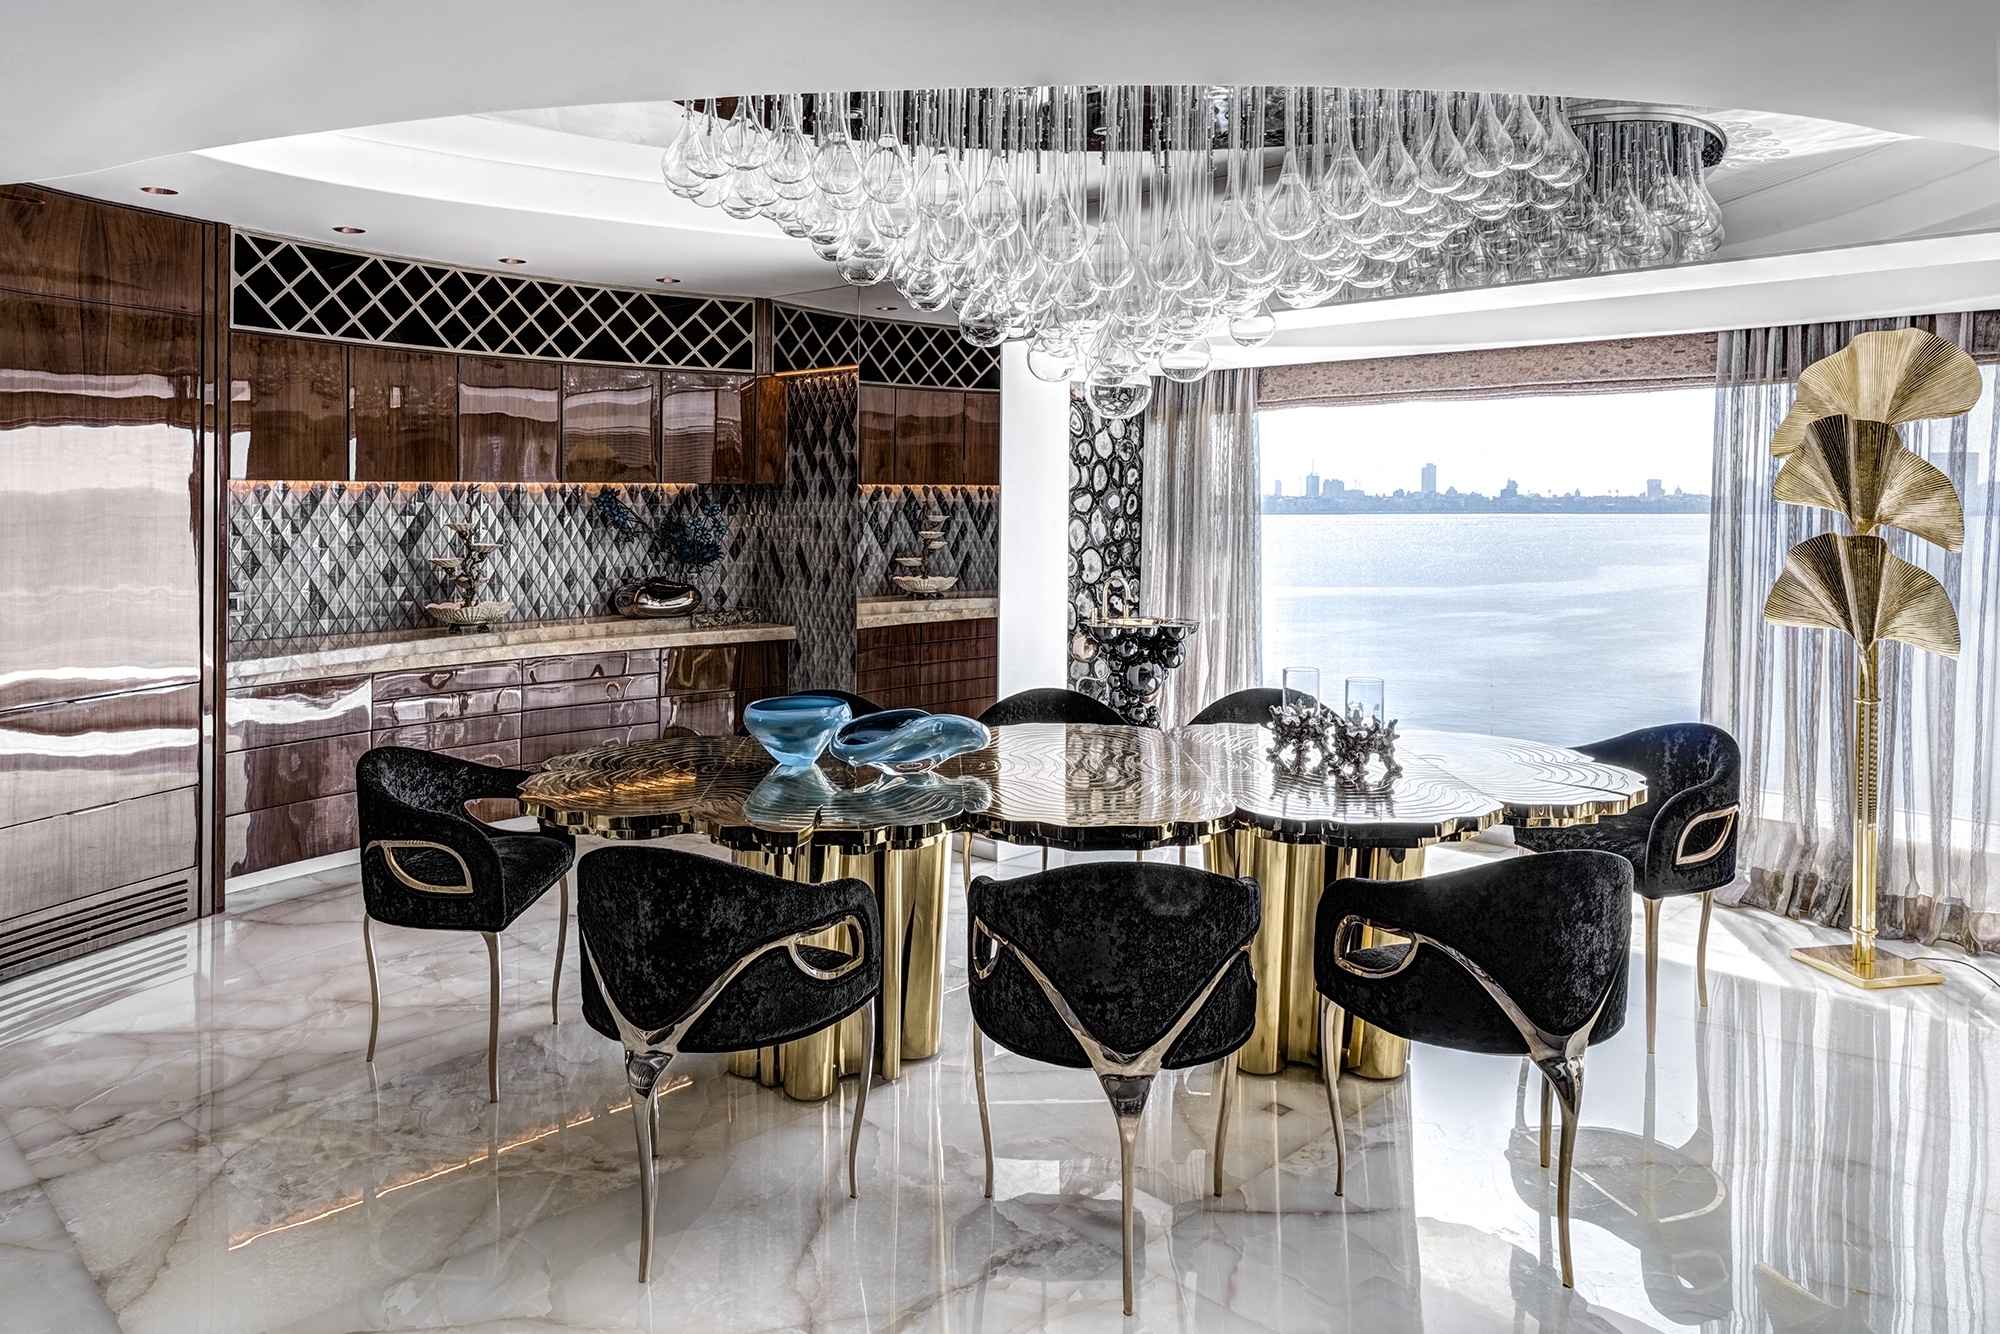 Luxurious Apartment; Luxury; Apartment; Project; Freestanding; Elegant; Luxury; Maison Valentina; Three Hole Mixer Tap; interior design; extraordinary; eclectic